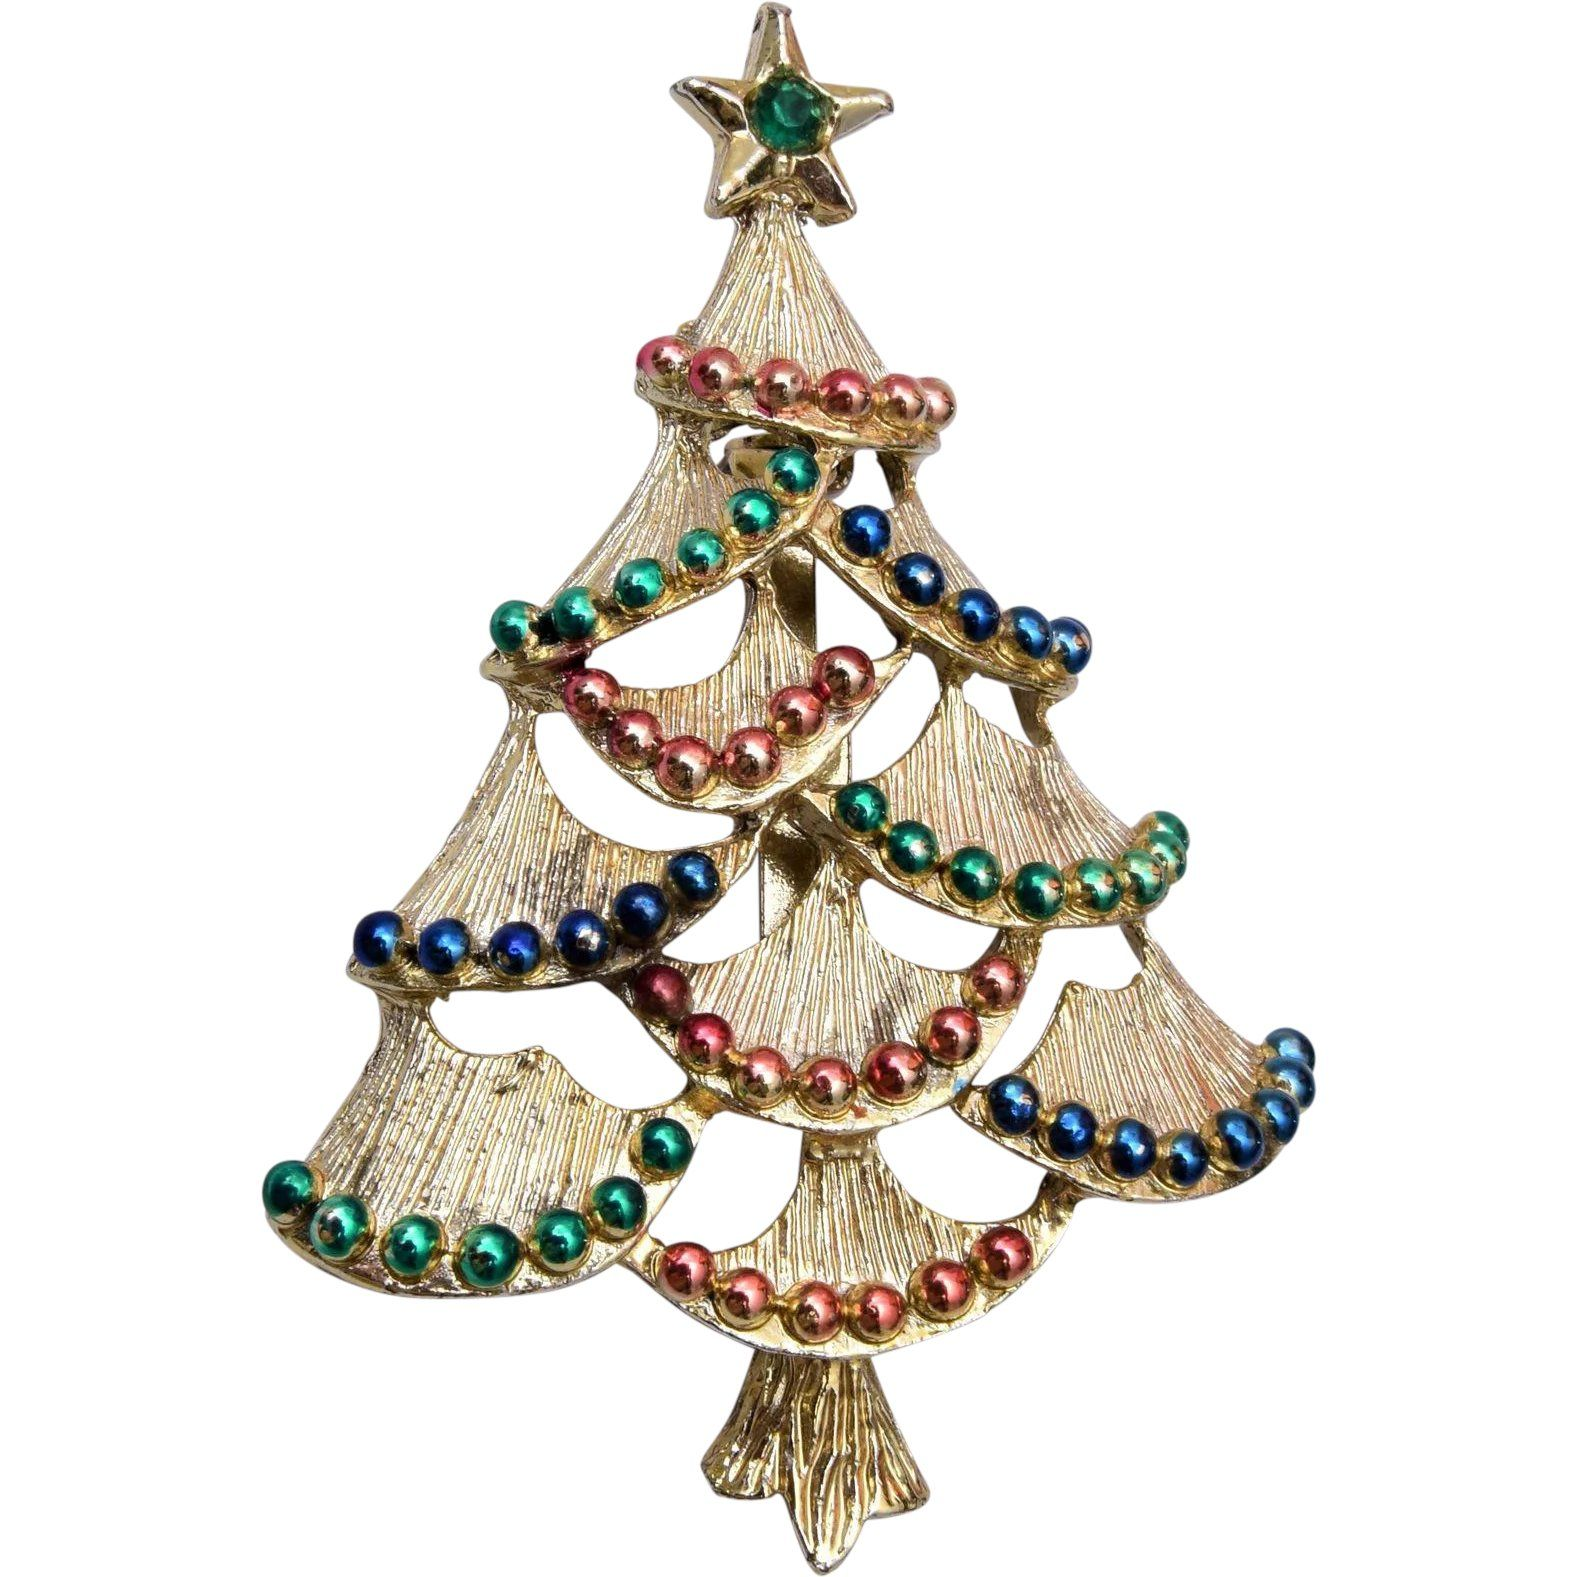 Gerry's Christmas Tree Brooch ---- 50% OFF SALE Starting ...